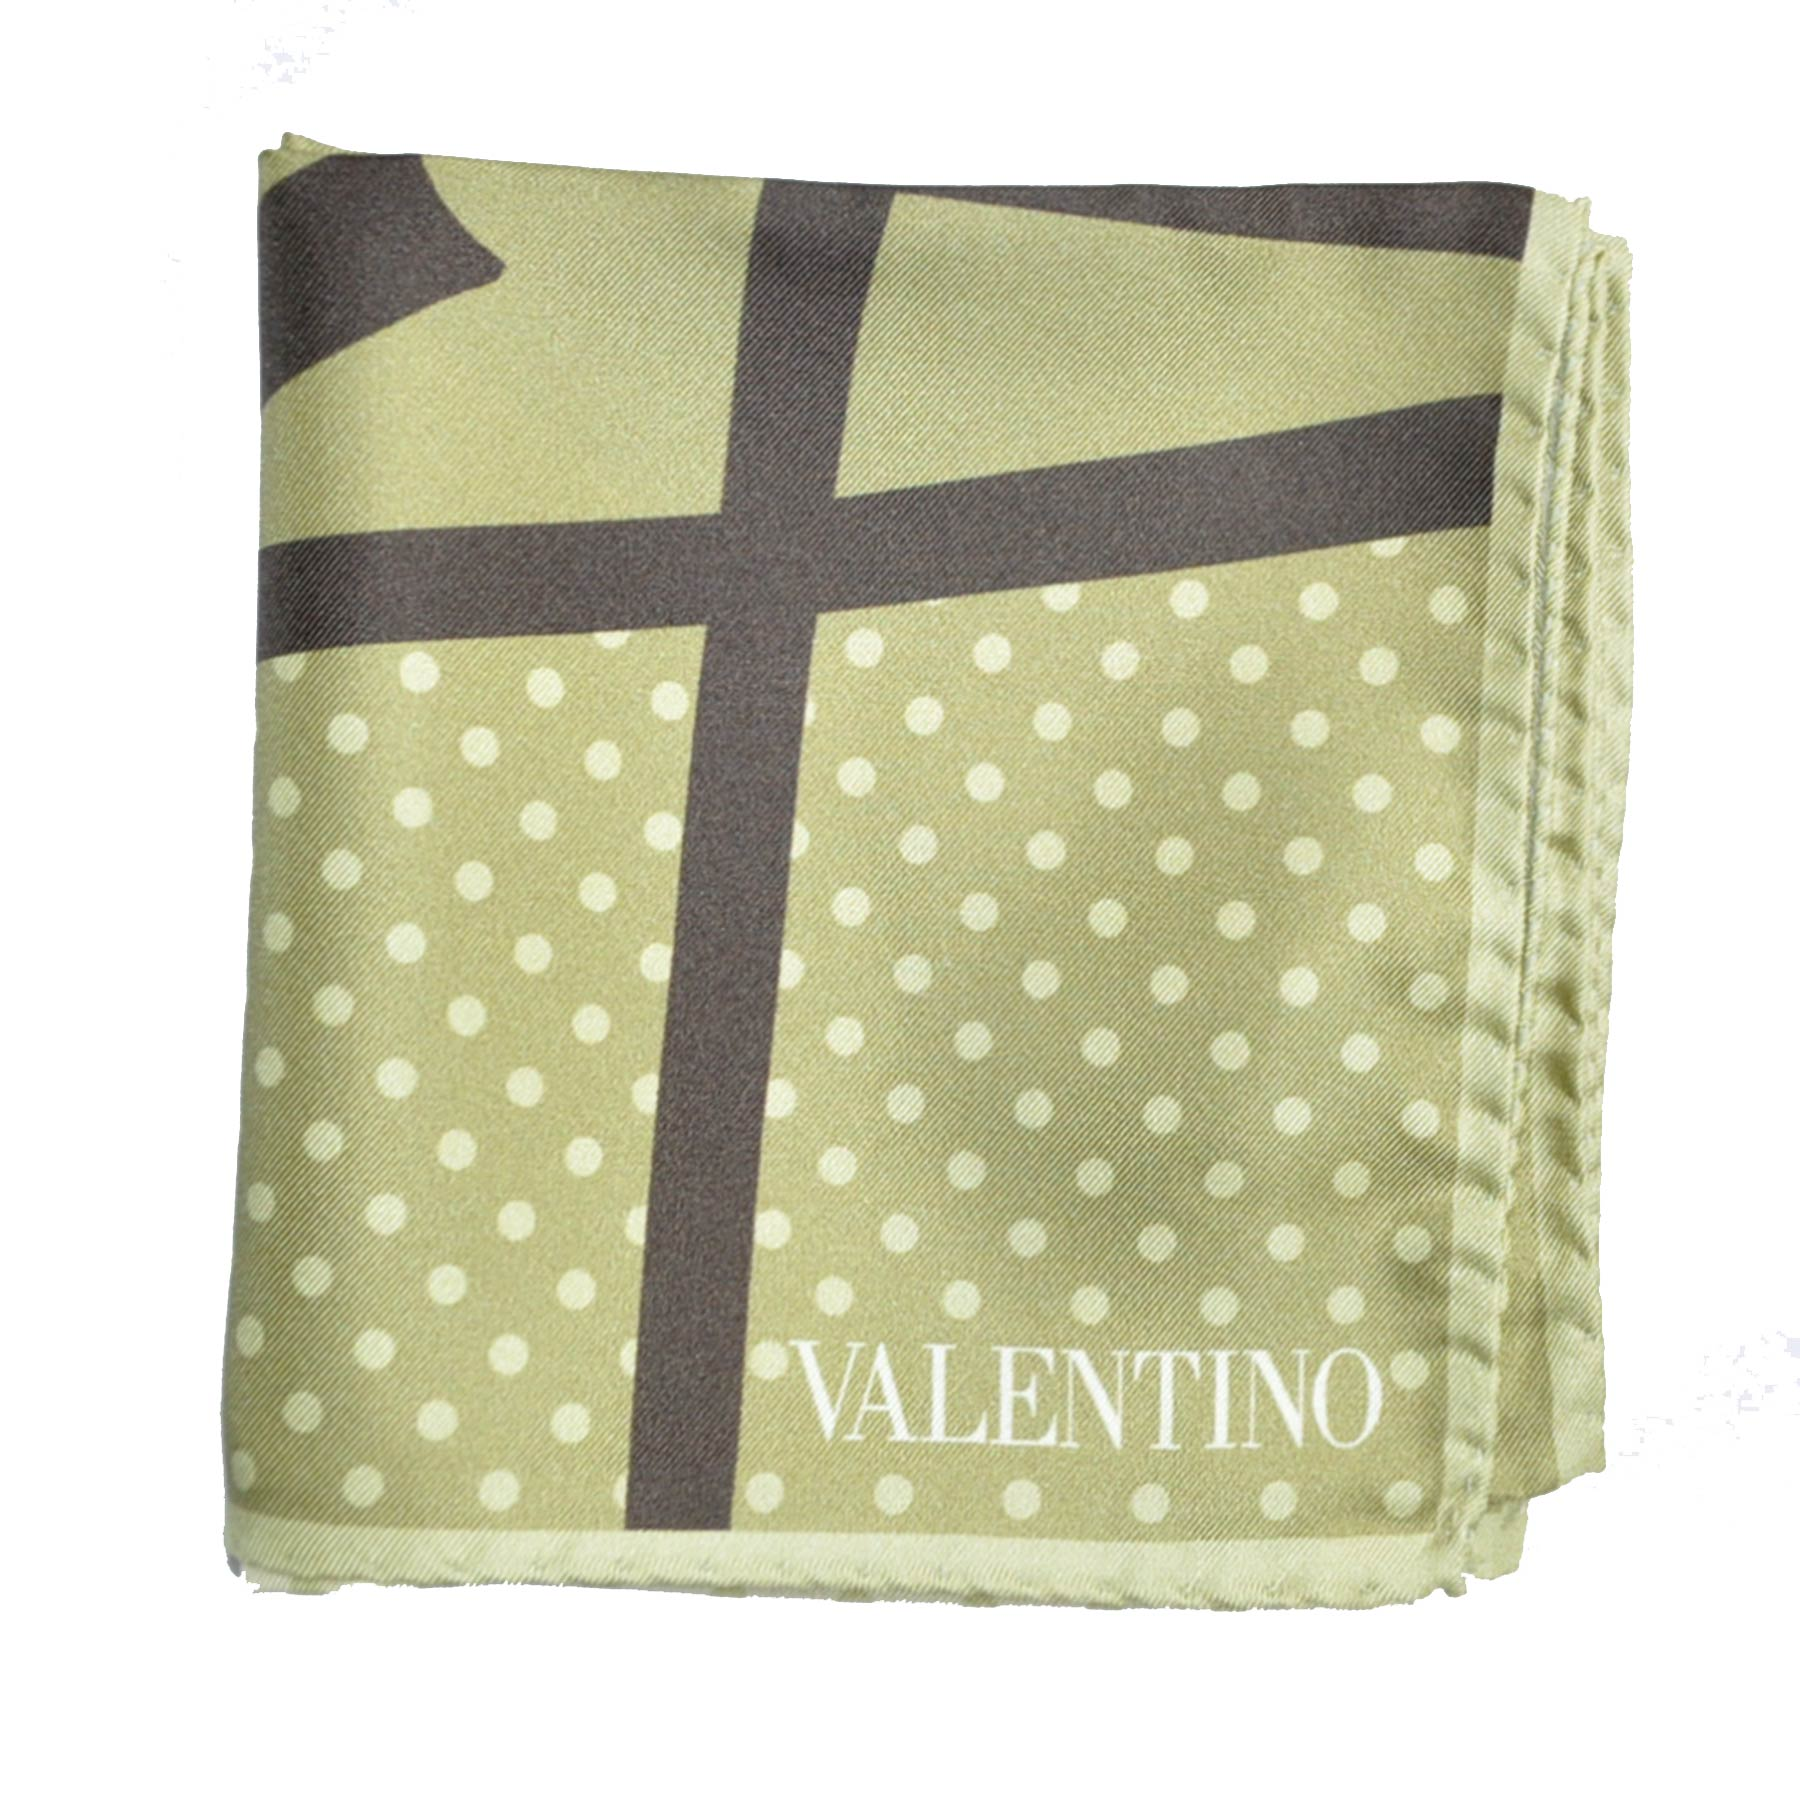 Valentino Scarf Sage Green Polka Dots & Bow - Silk Small Square FINAL SALE